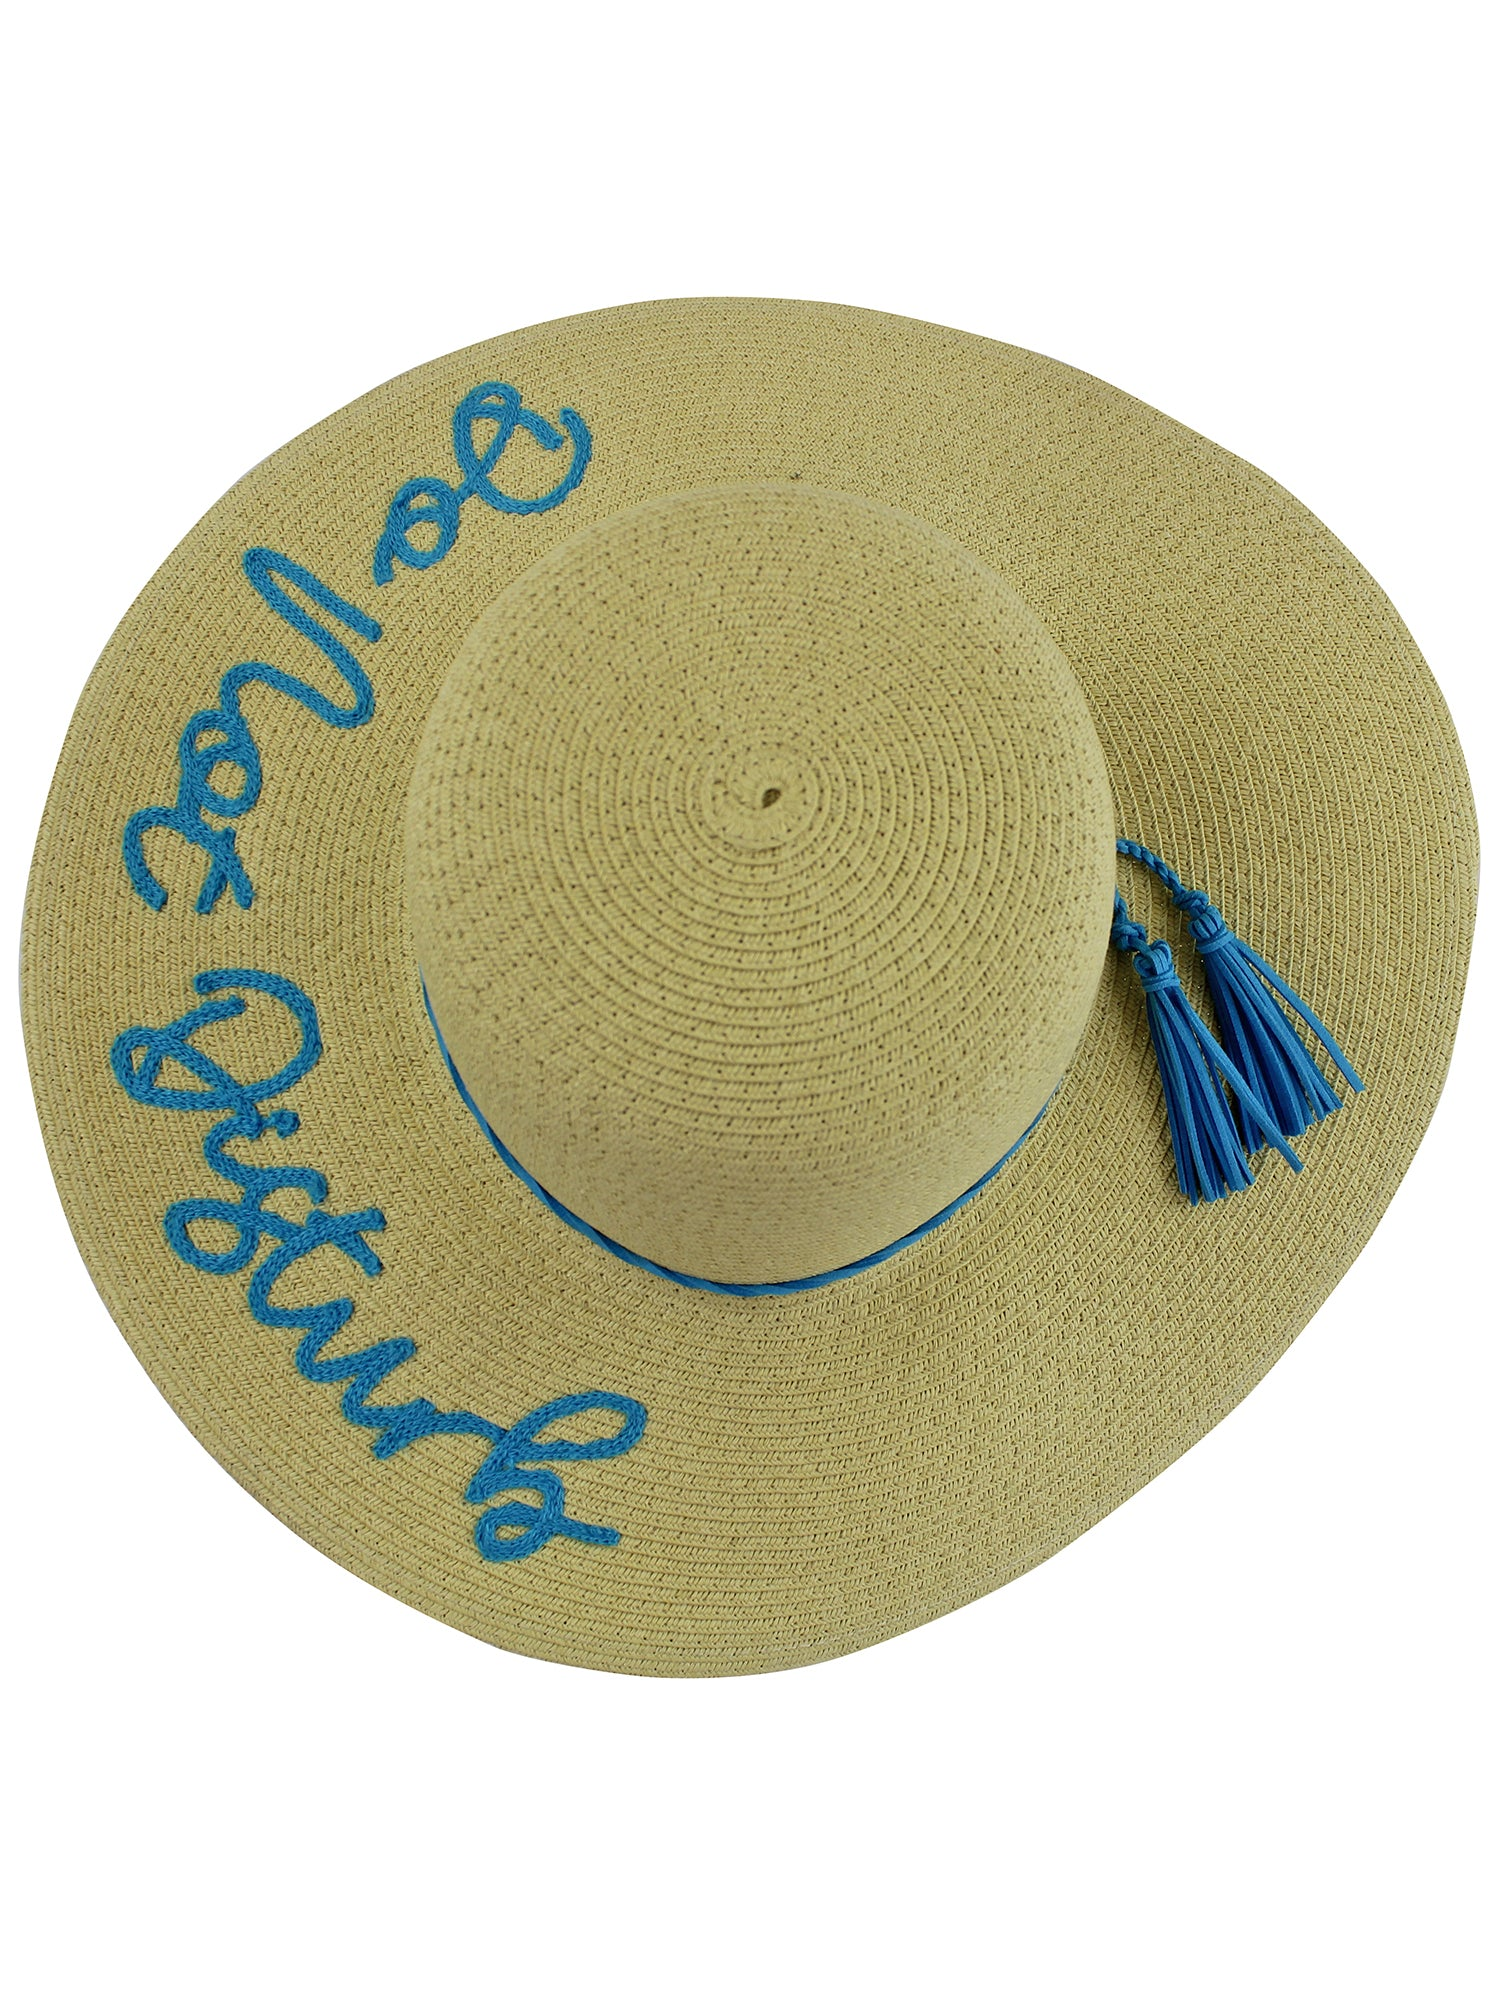 Do Not Disturb Embroidered Floppy Hat